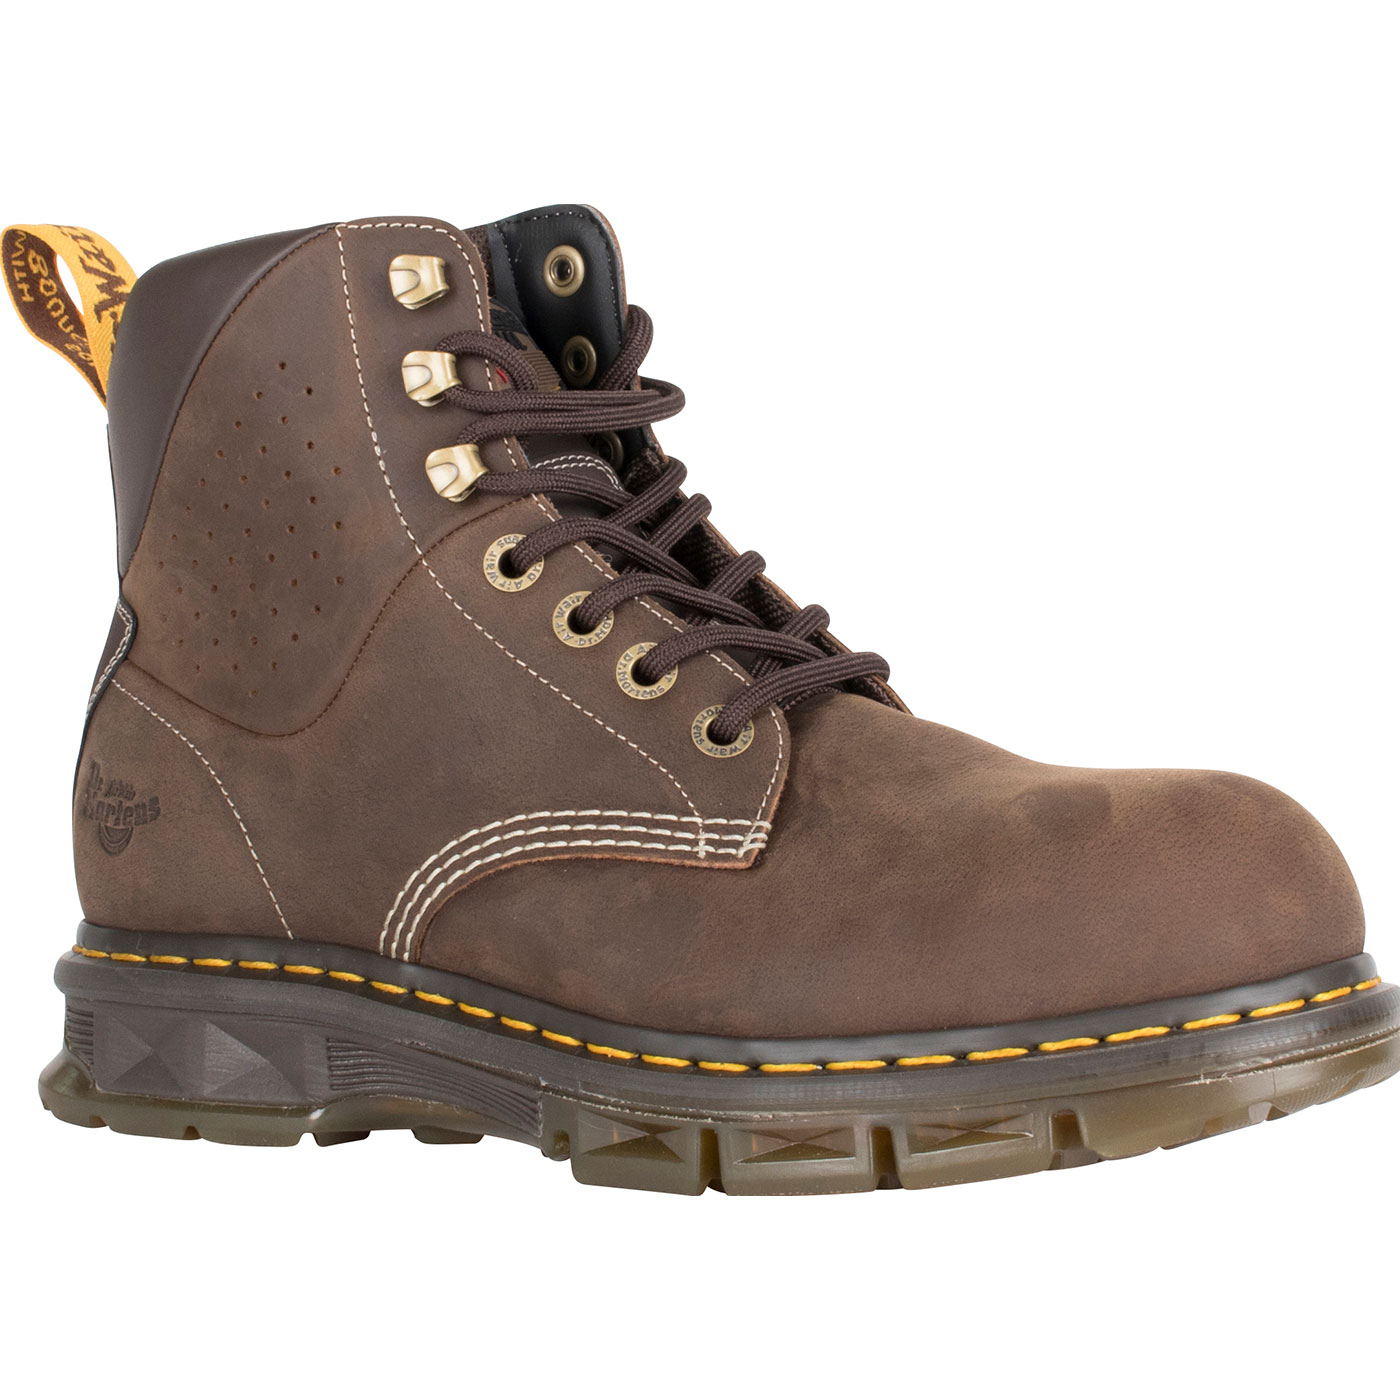 368952ac6c2 Dr. Martens Britton Men s 6 inch Steel Toe Electrical Hazard Work BootDr.  Martens Britton Men s 6 inch Steel Toe Electrical Hazard Work Boot